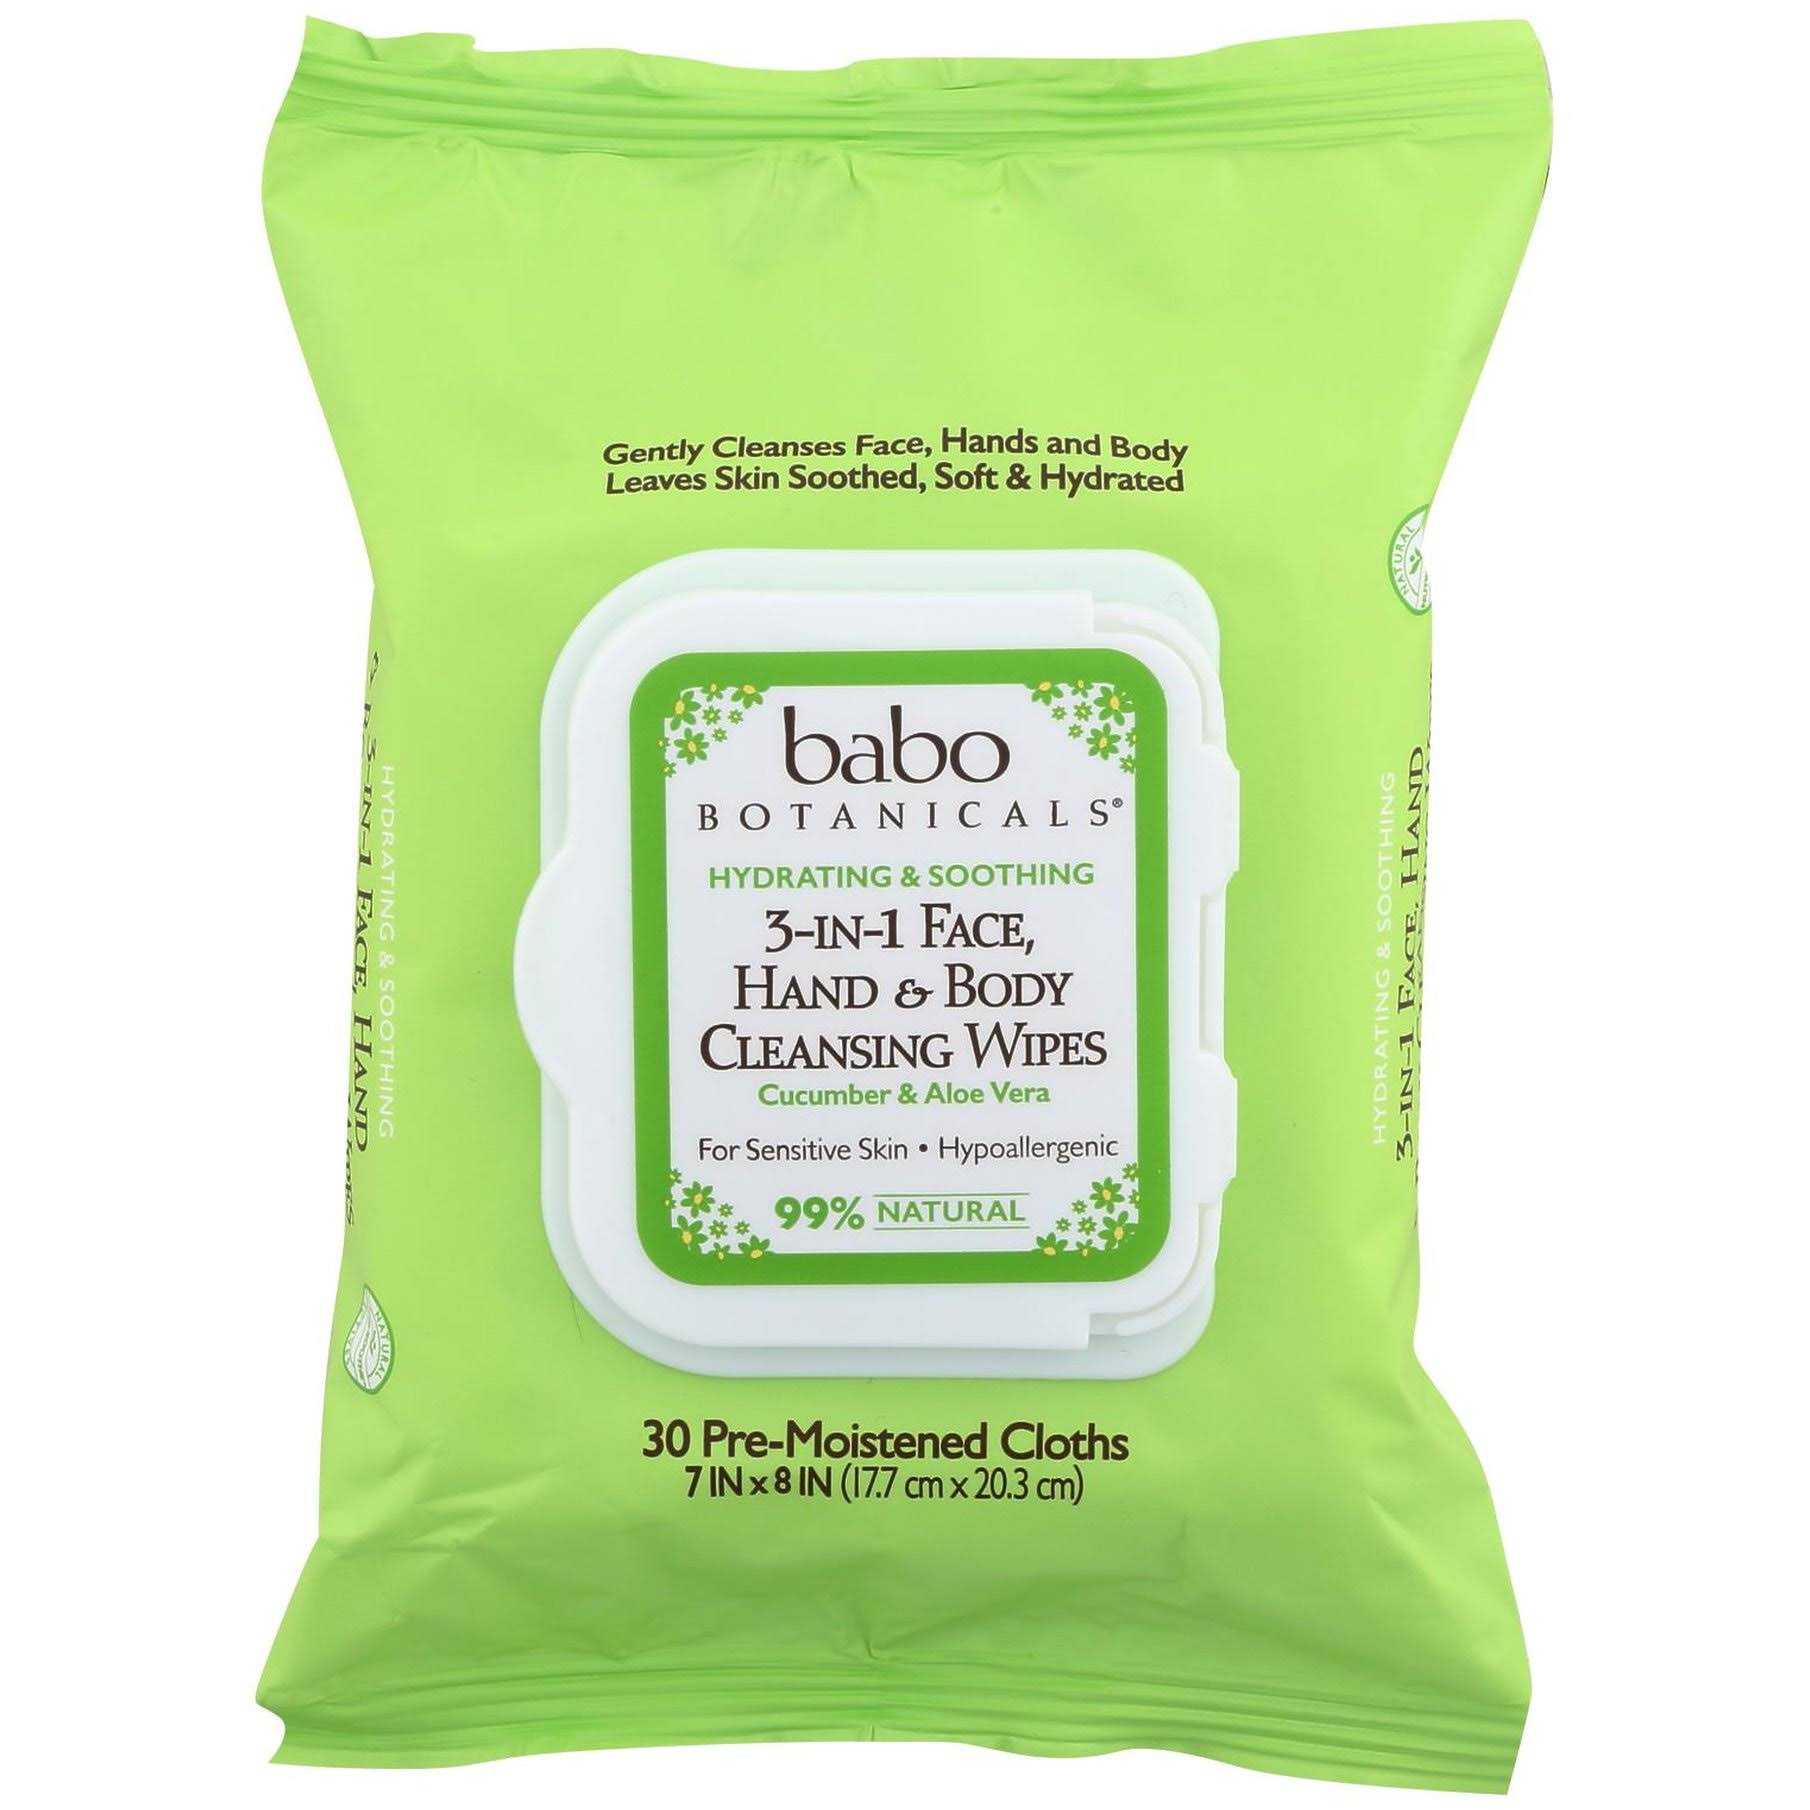 Babo Botanicals 3-in-1 Hydrating Wipes - Cucumber and Aloe, 30 Sheets